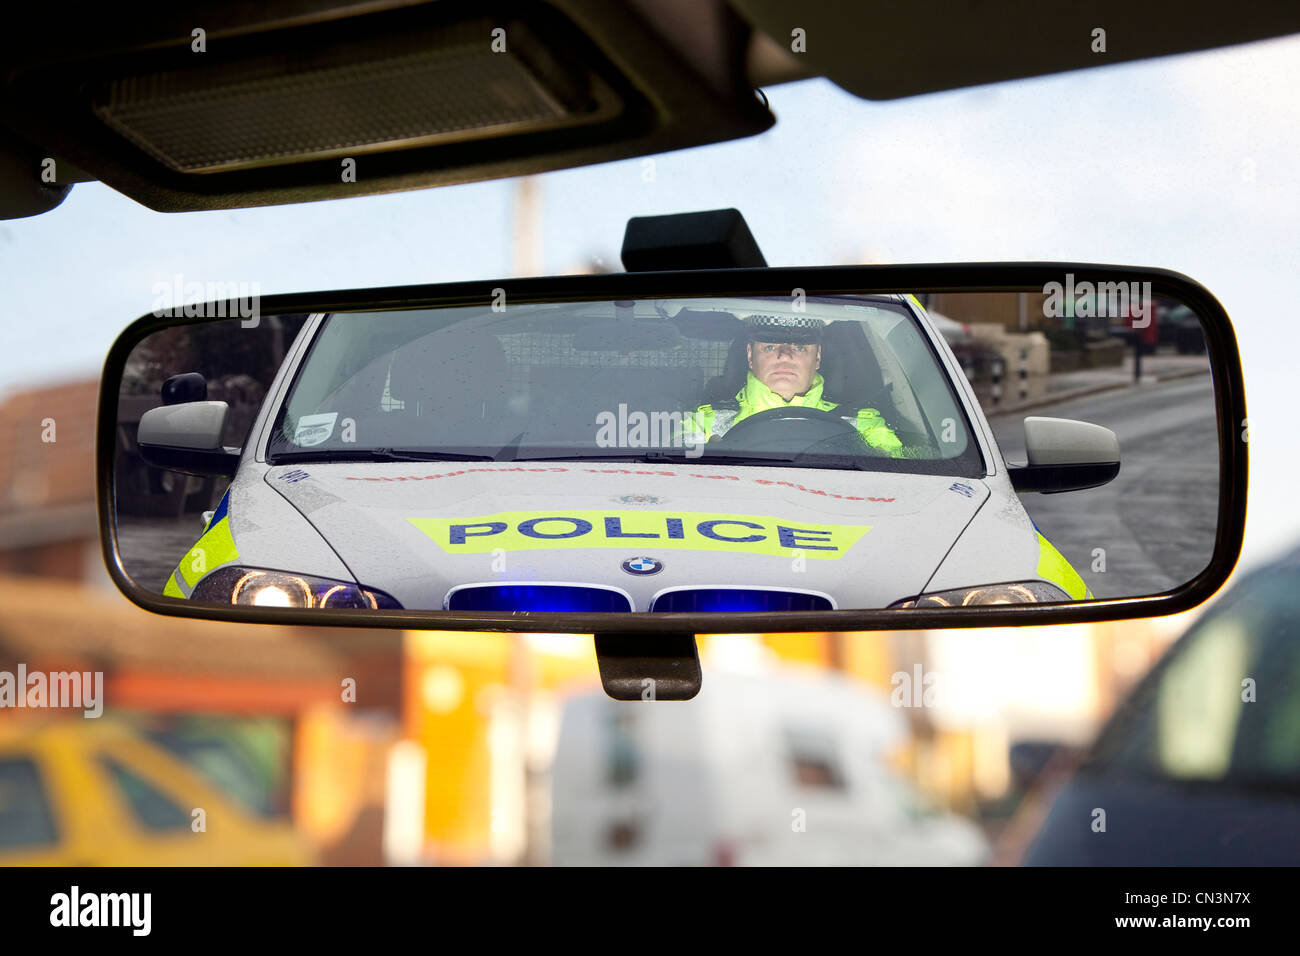 view in view view mirror Traffic Police Car drink driving Christmas campaign Officer BMW flashing lights blue Britain - Stock Image